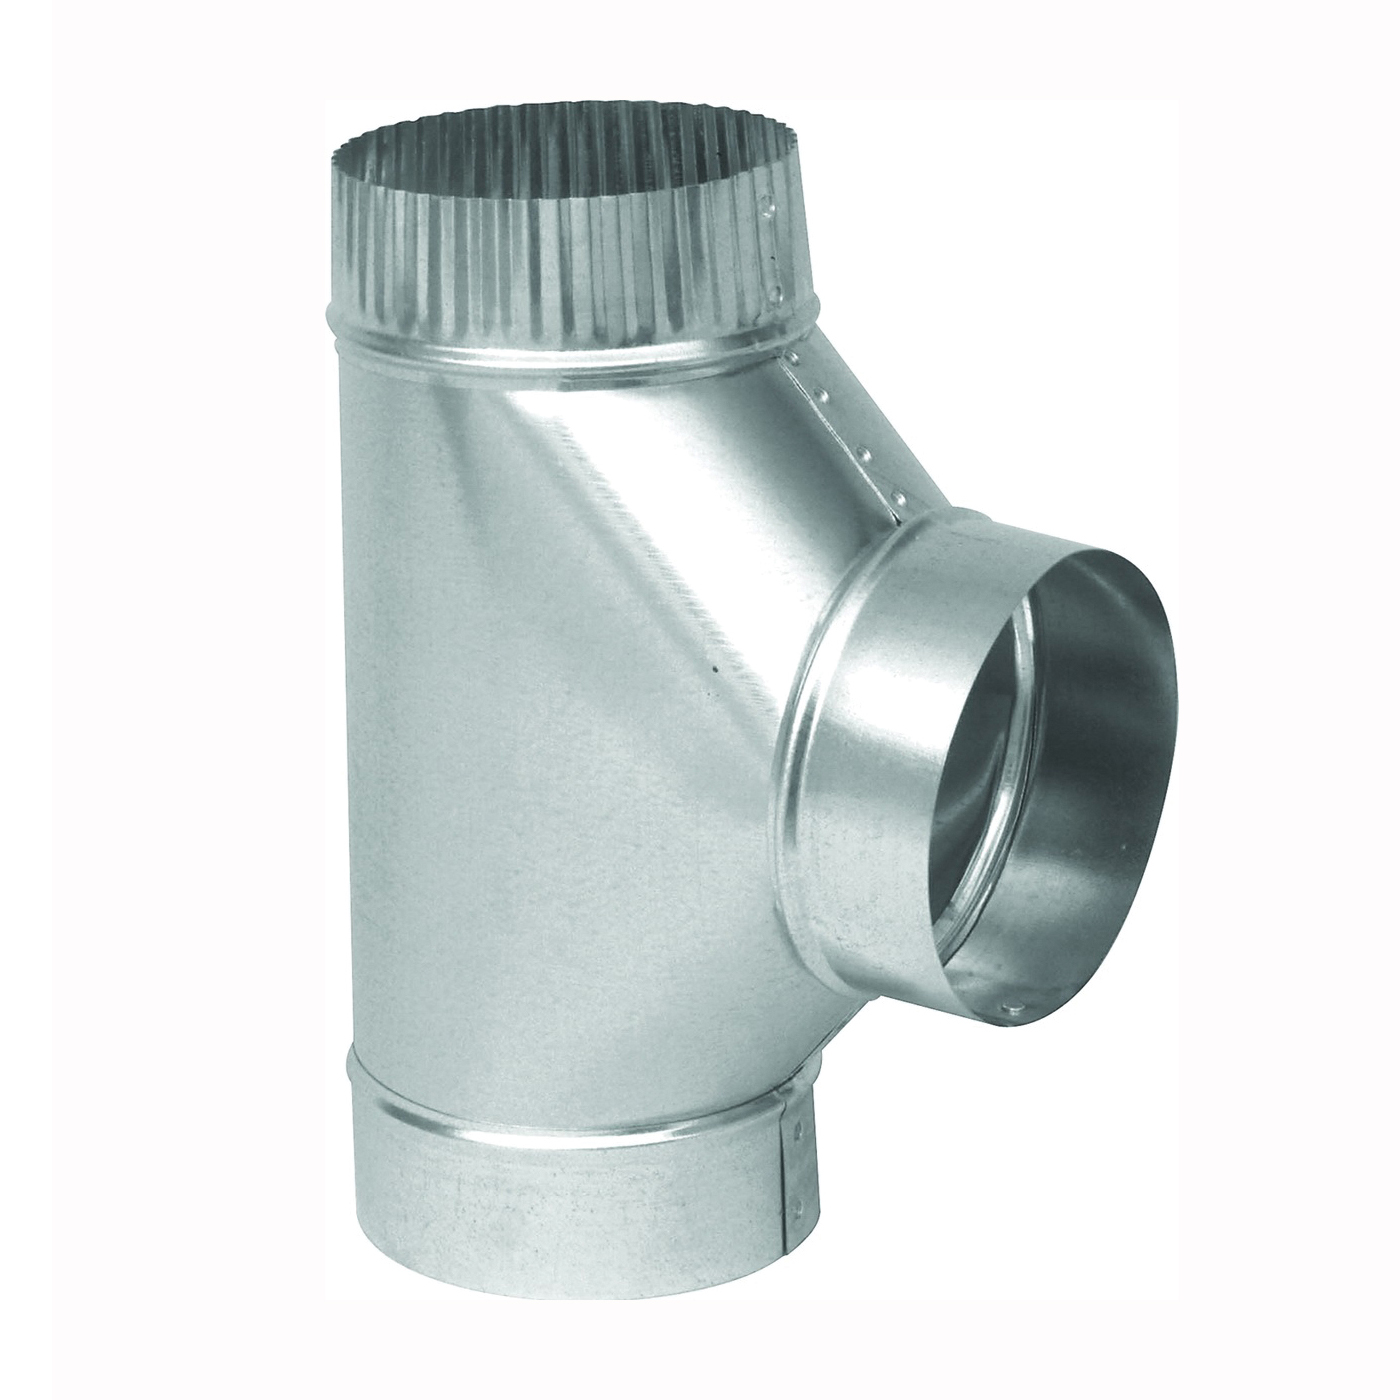 Picture of Imperial GV0900 Tee, 8 in, 28 Gauge, Galvanized Steel